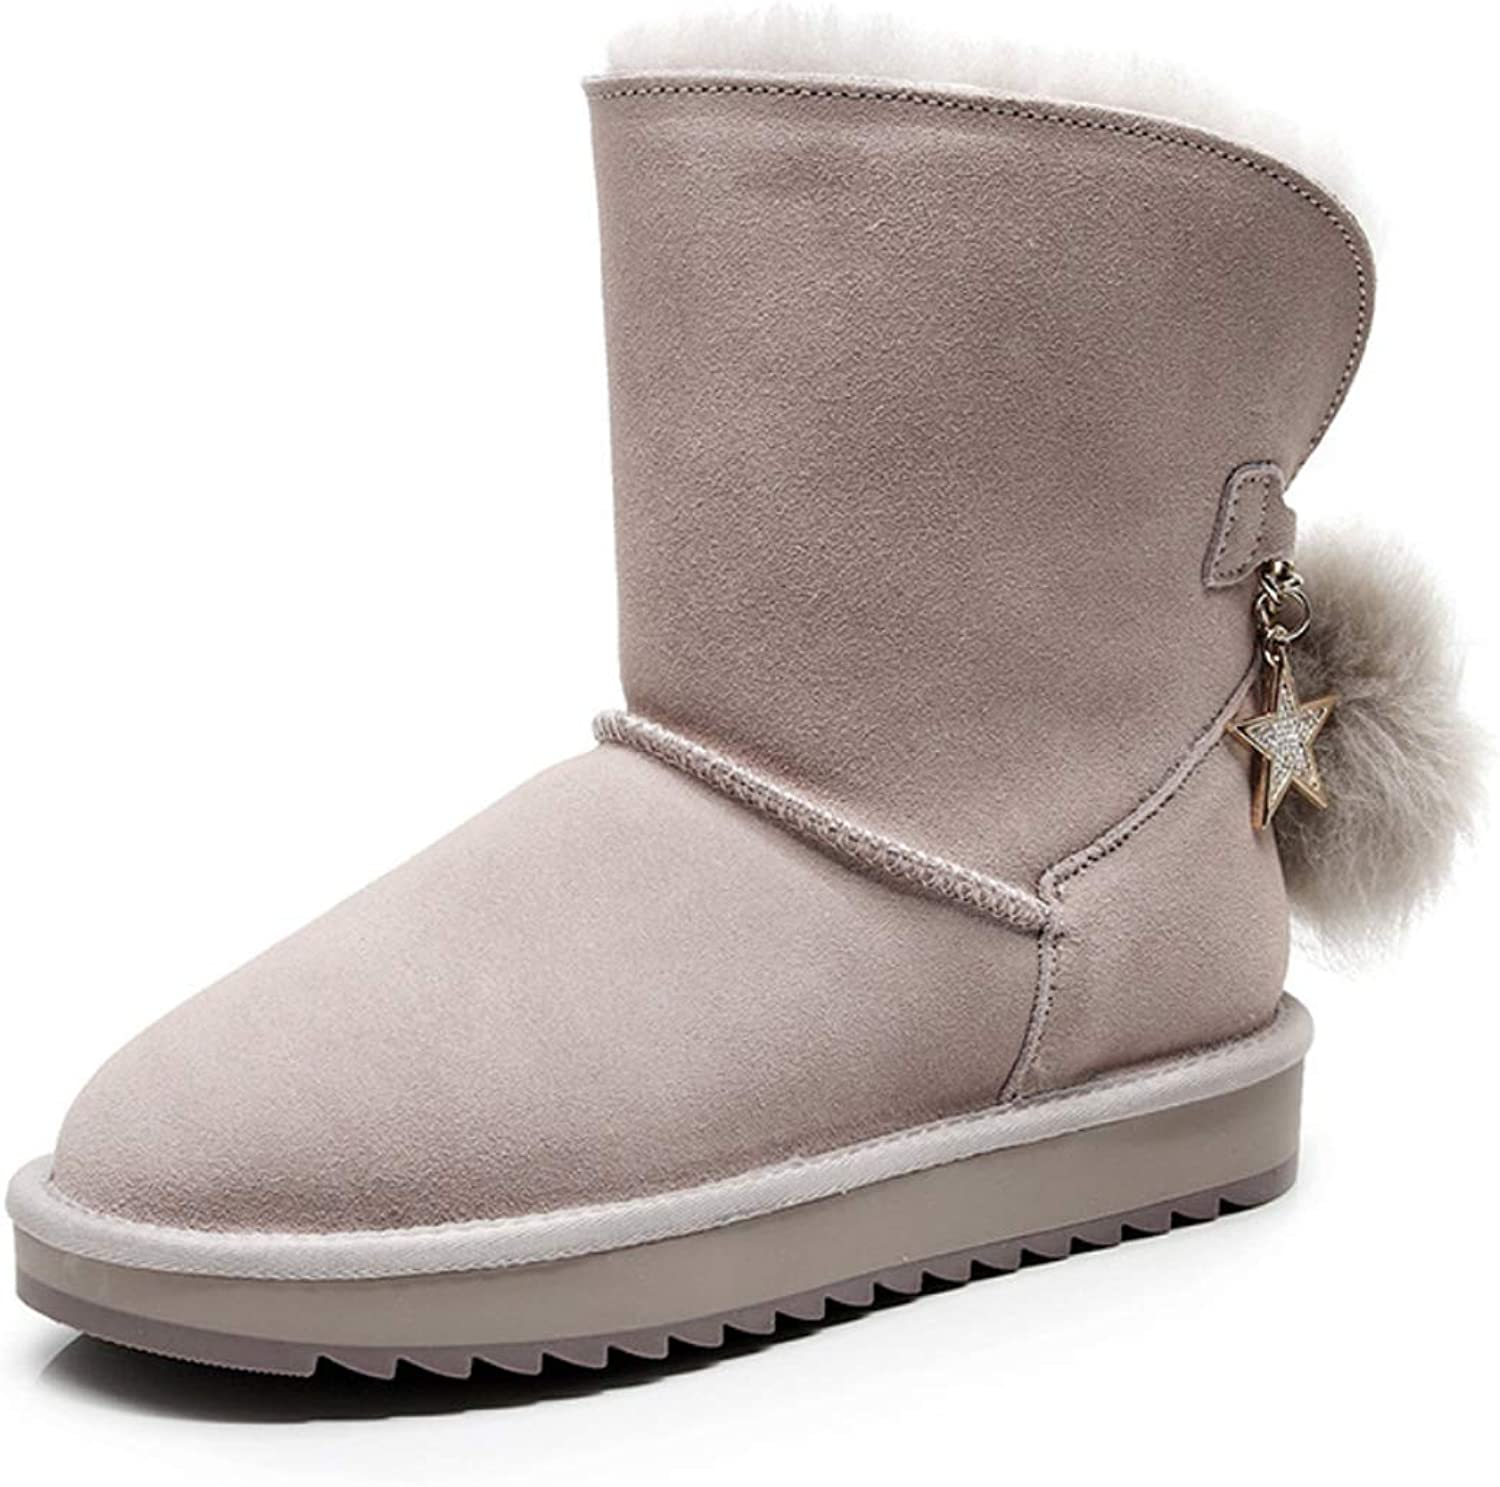 Womens Boots with Flat Heel Cute Pompom Star Chain Snow Boots for 2018 Winter Warm Non-Slip Ankle Boots